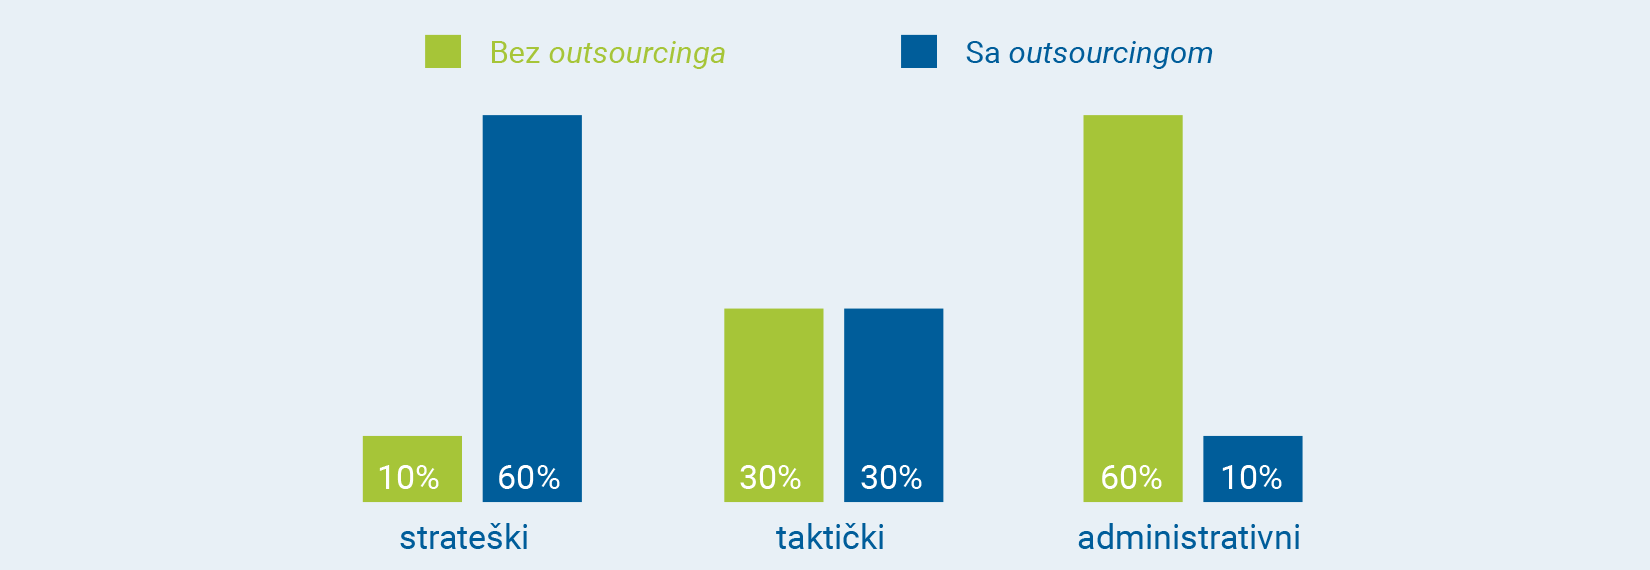 outsouricng